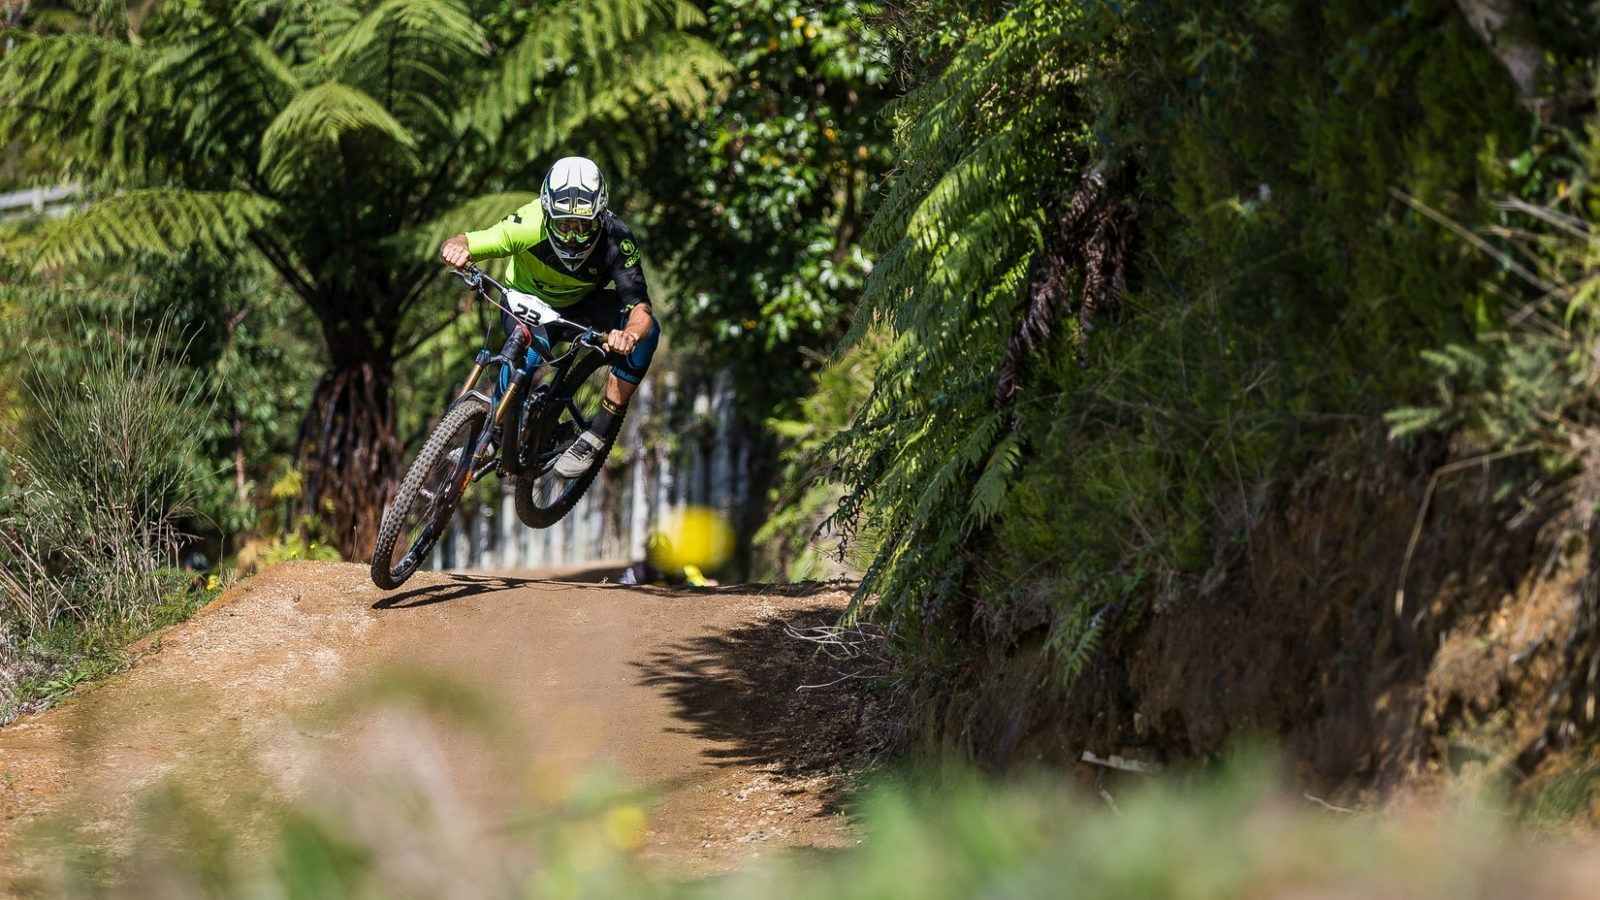 Matt Walker Wins Big at Crankworx Rotorua Air DH